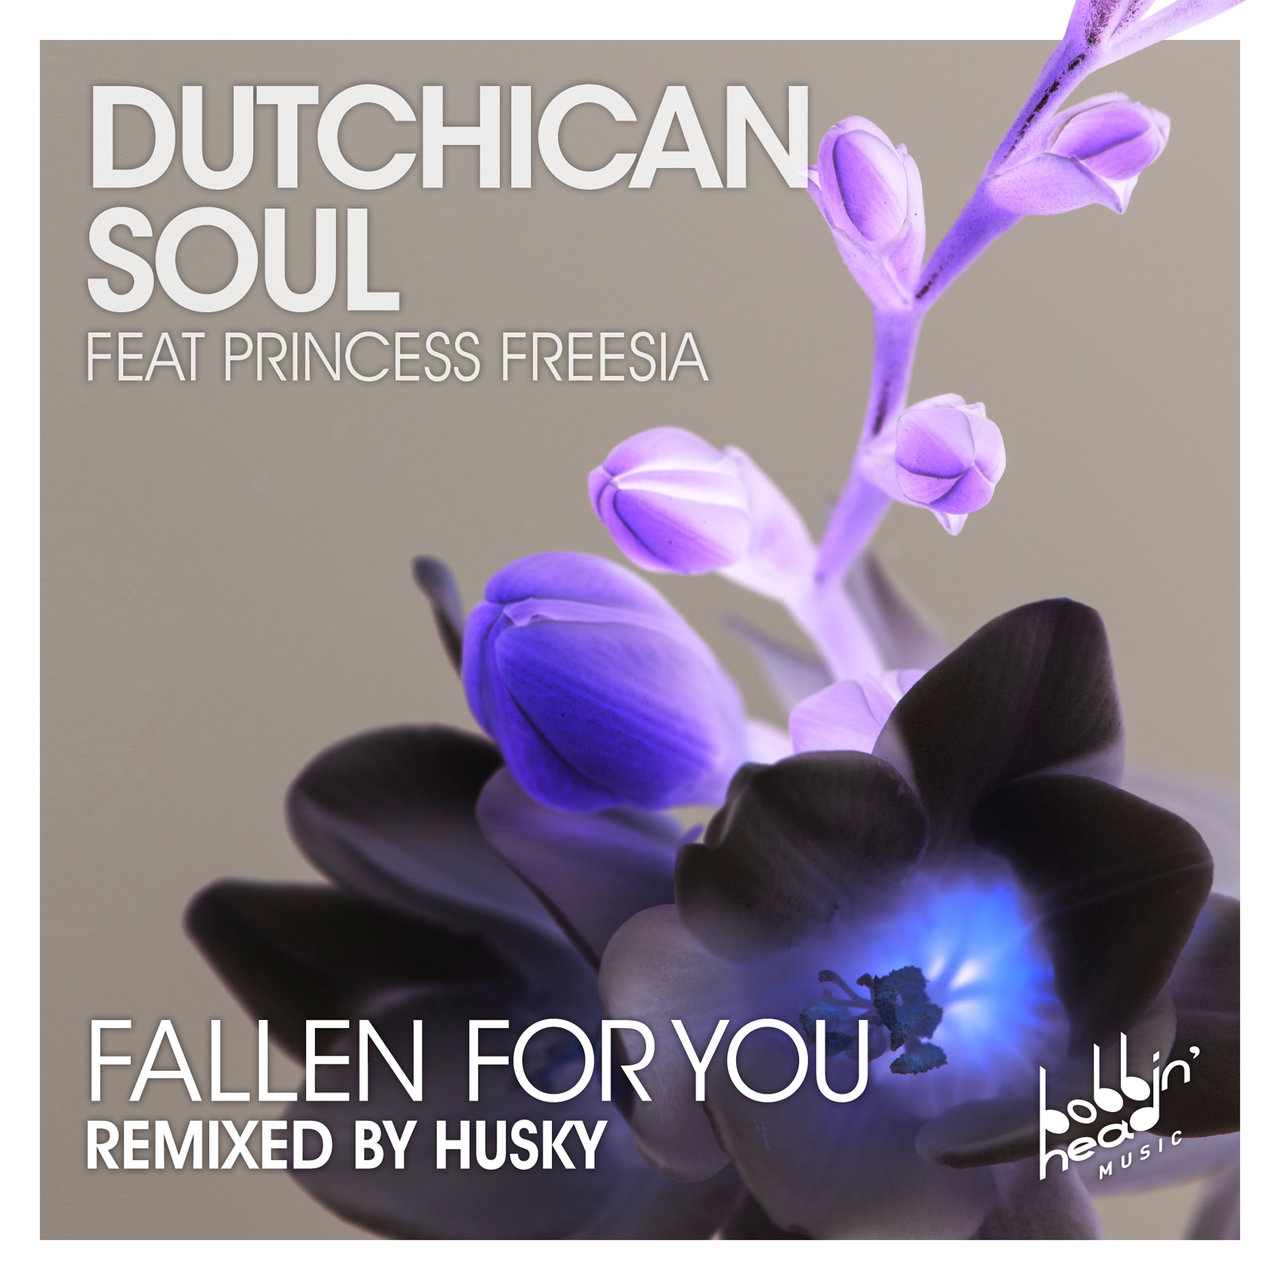 dutchican soul princess freesia